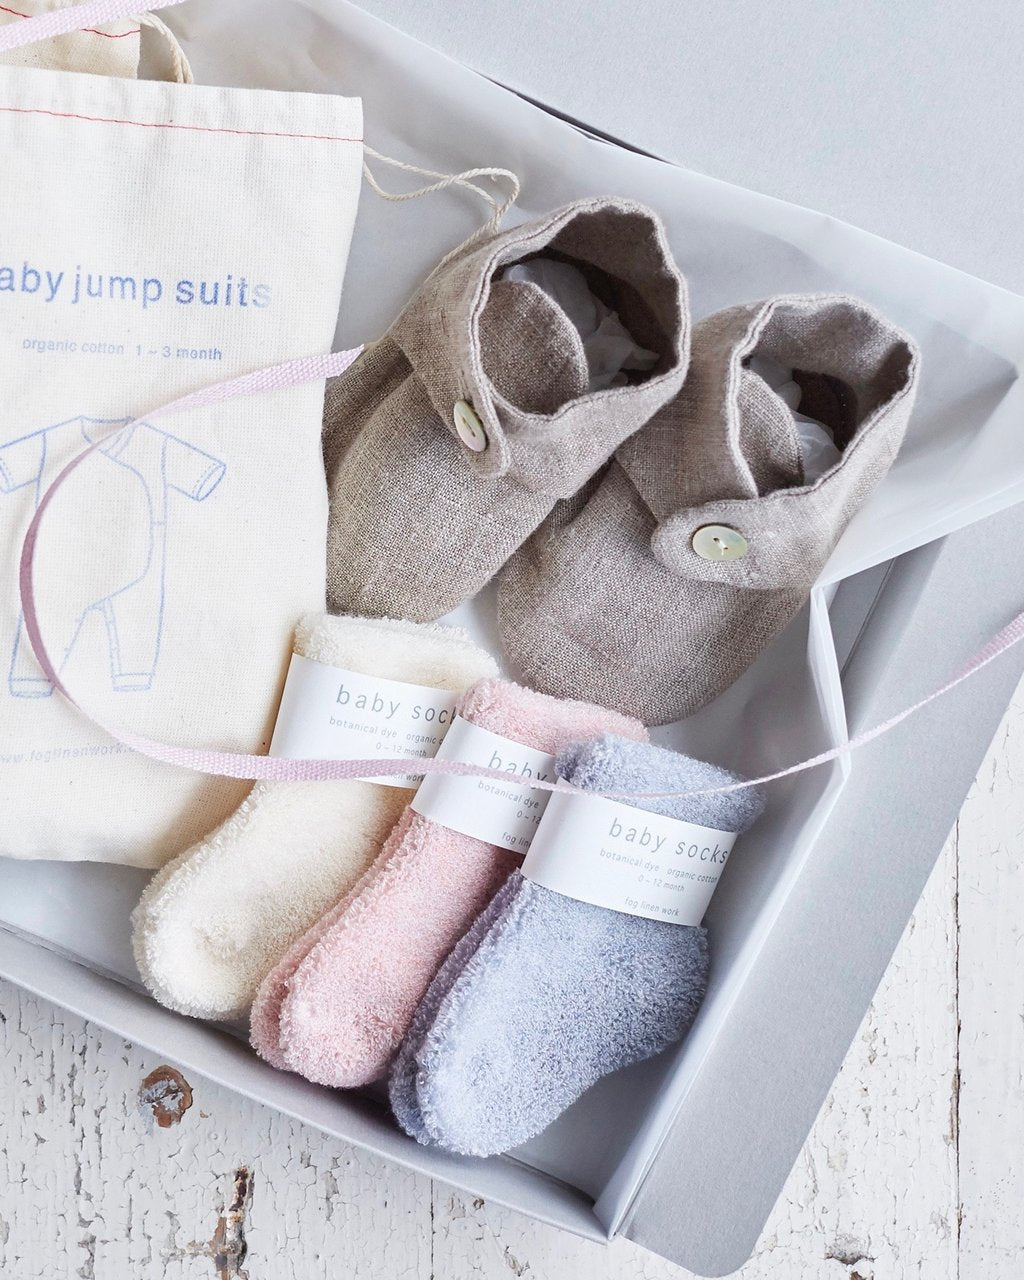 Fog Linen: Cotton Baby Socks